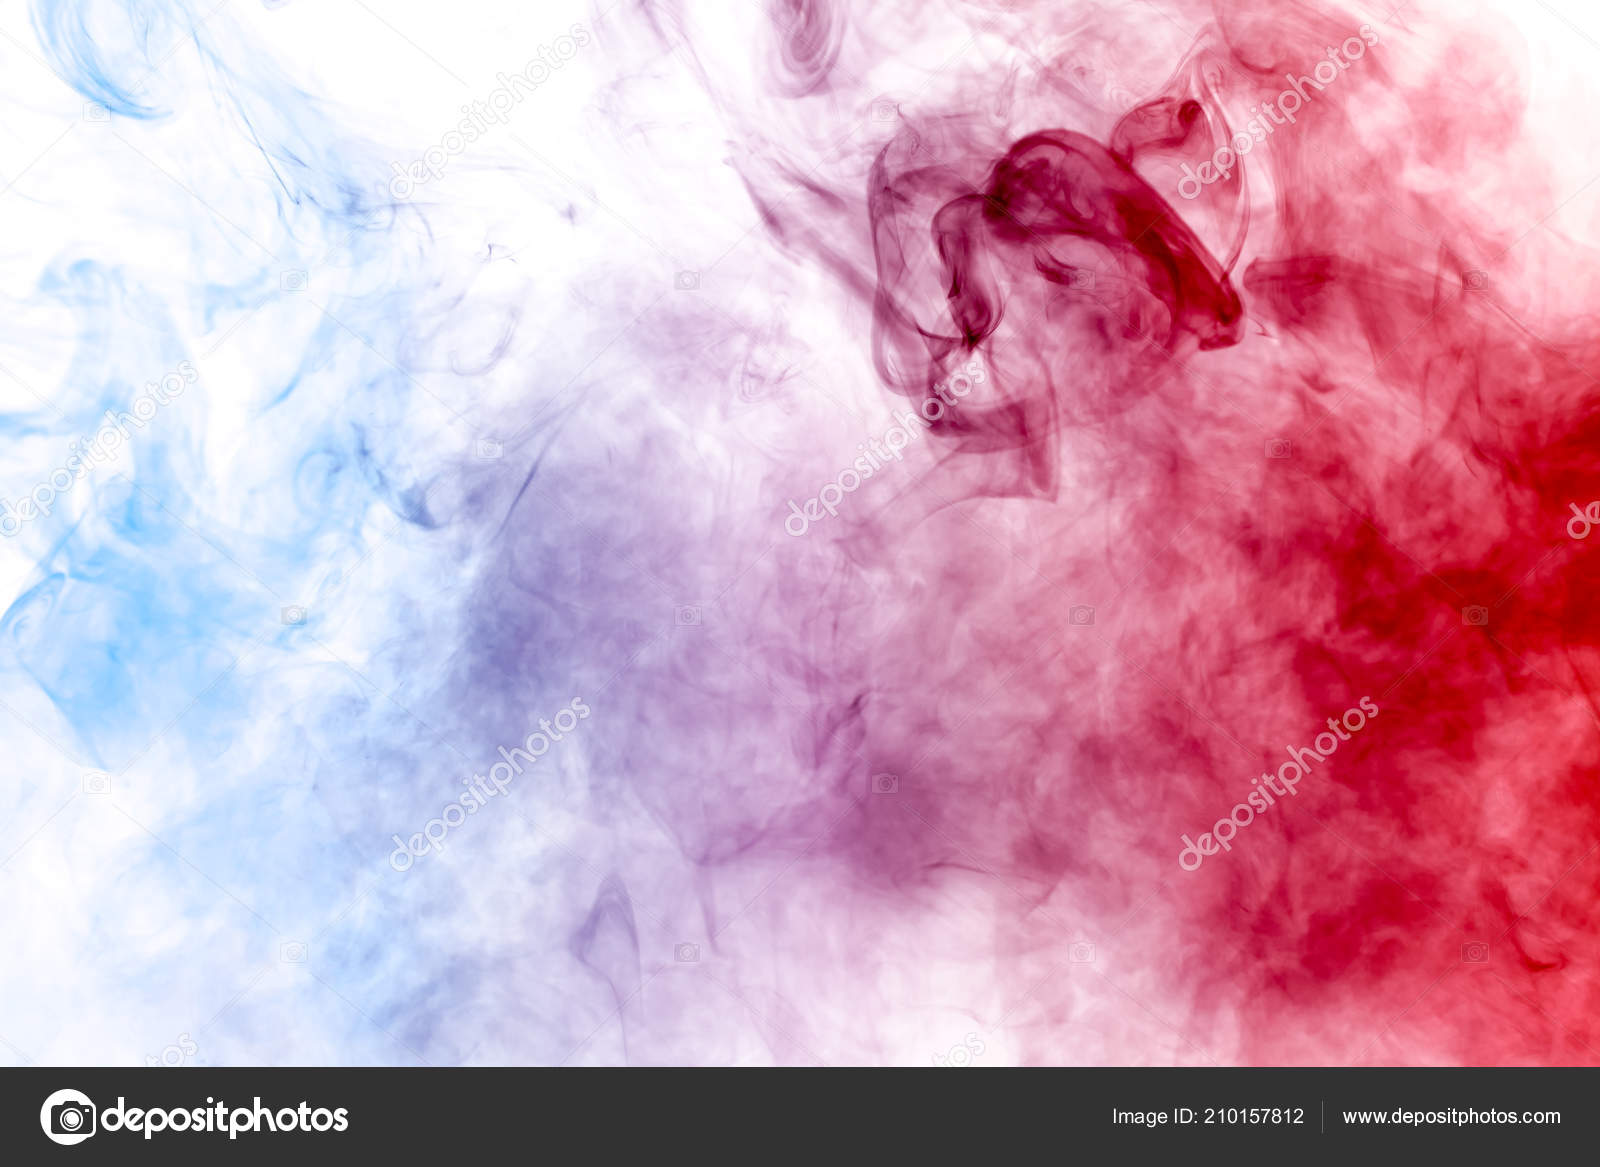 dense red blue smoke white isolated background background smoke vap stock photo c everyonensk 210157812 dense red blue smoke white isolated background background smoke vap stock photo c everyonensk 210157812